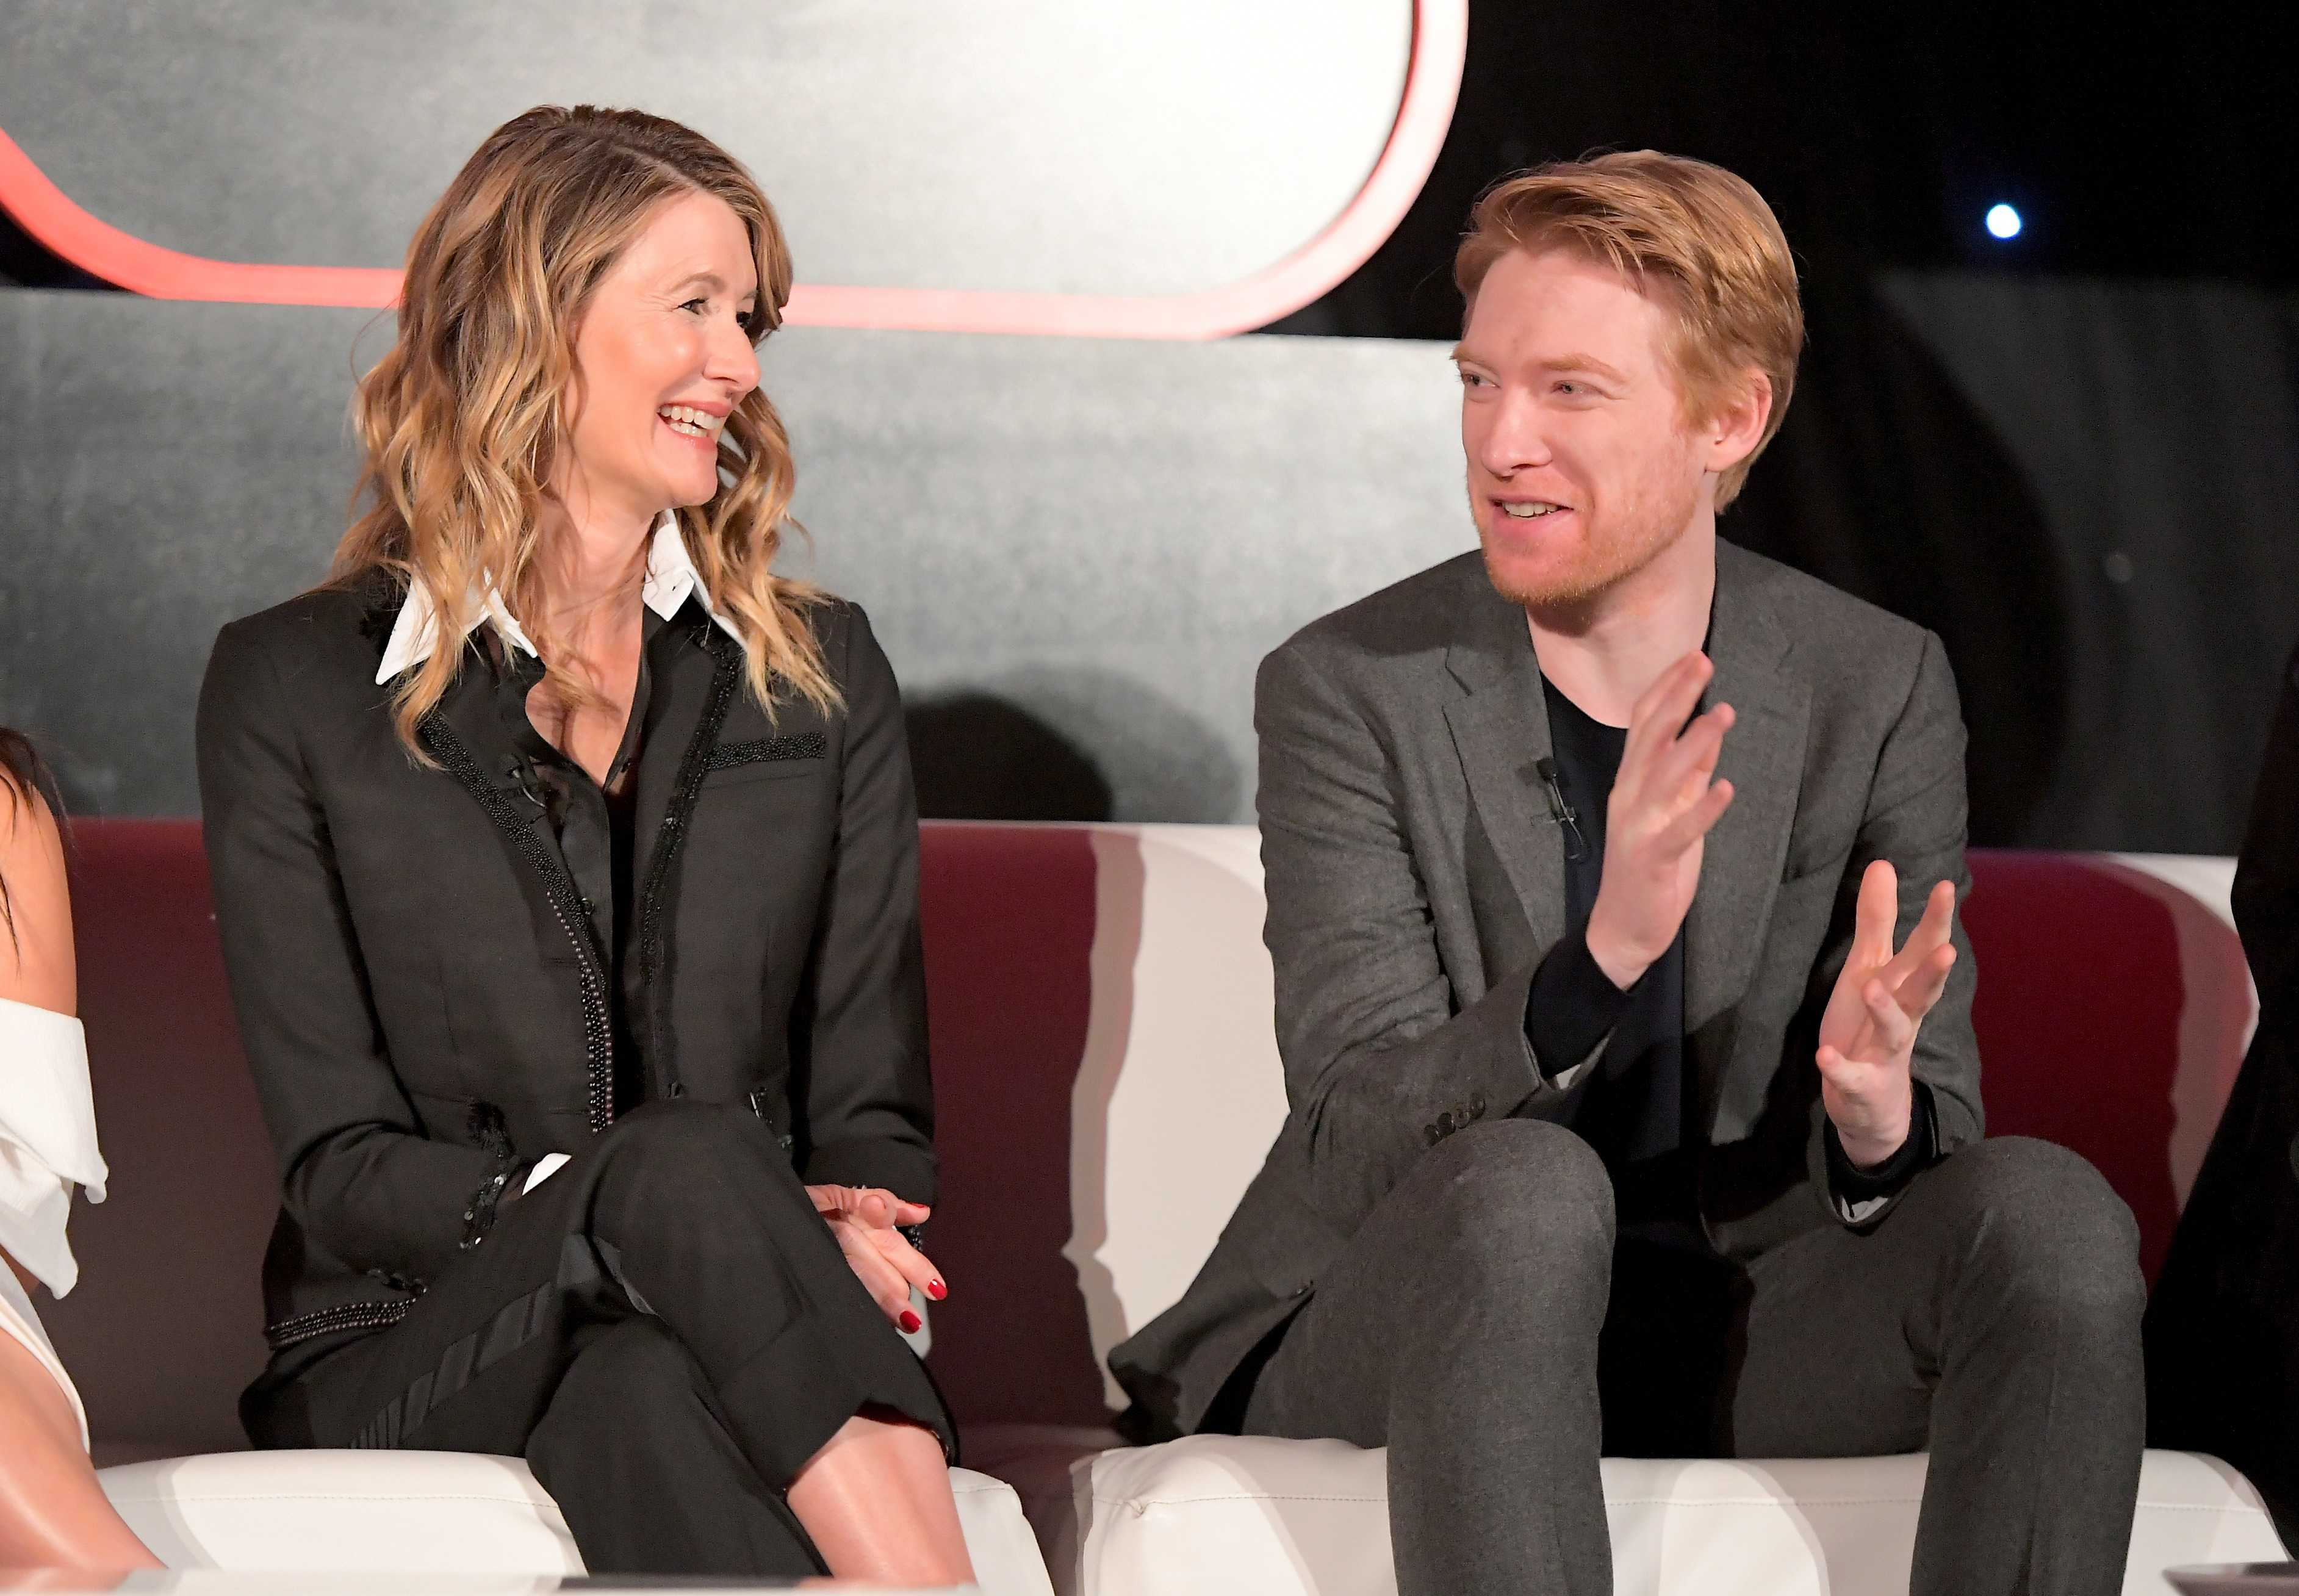 Star wars the last jedi press junket qa thelastjedievent domhnall gleeson i didnt go to the screening so laughter i wanted to wait and see it the way i saw the force awakens which was just with a load of ccuart Images